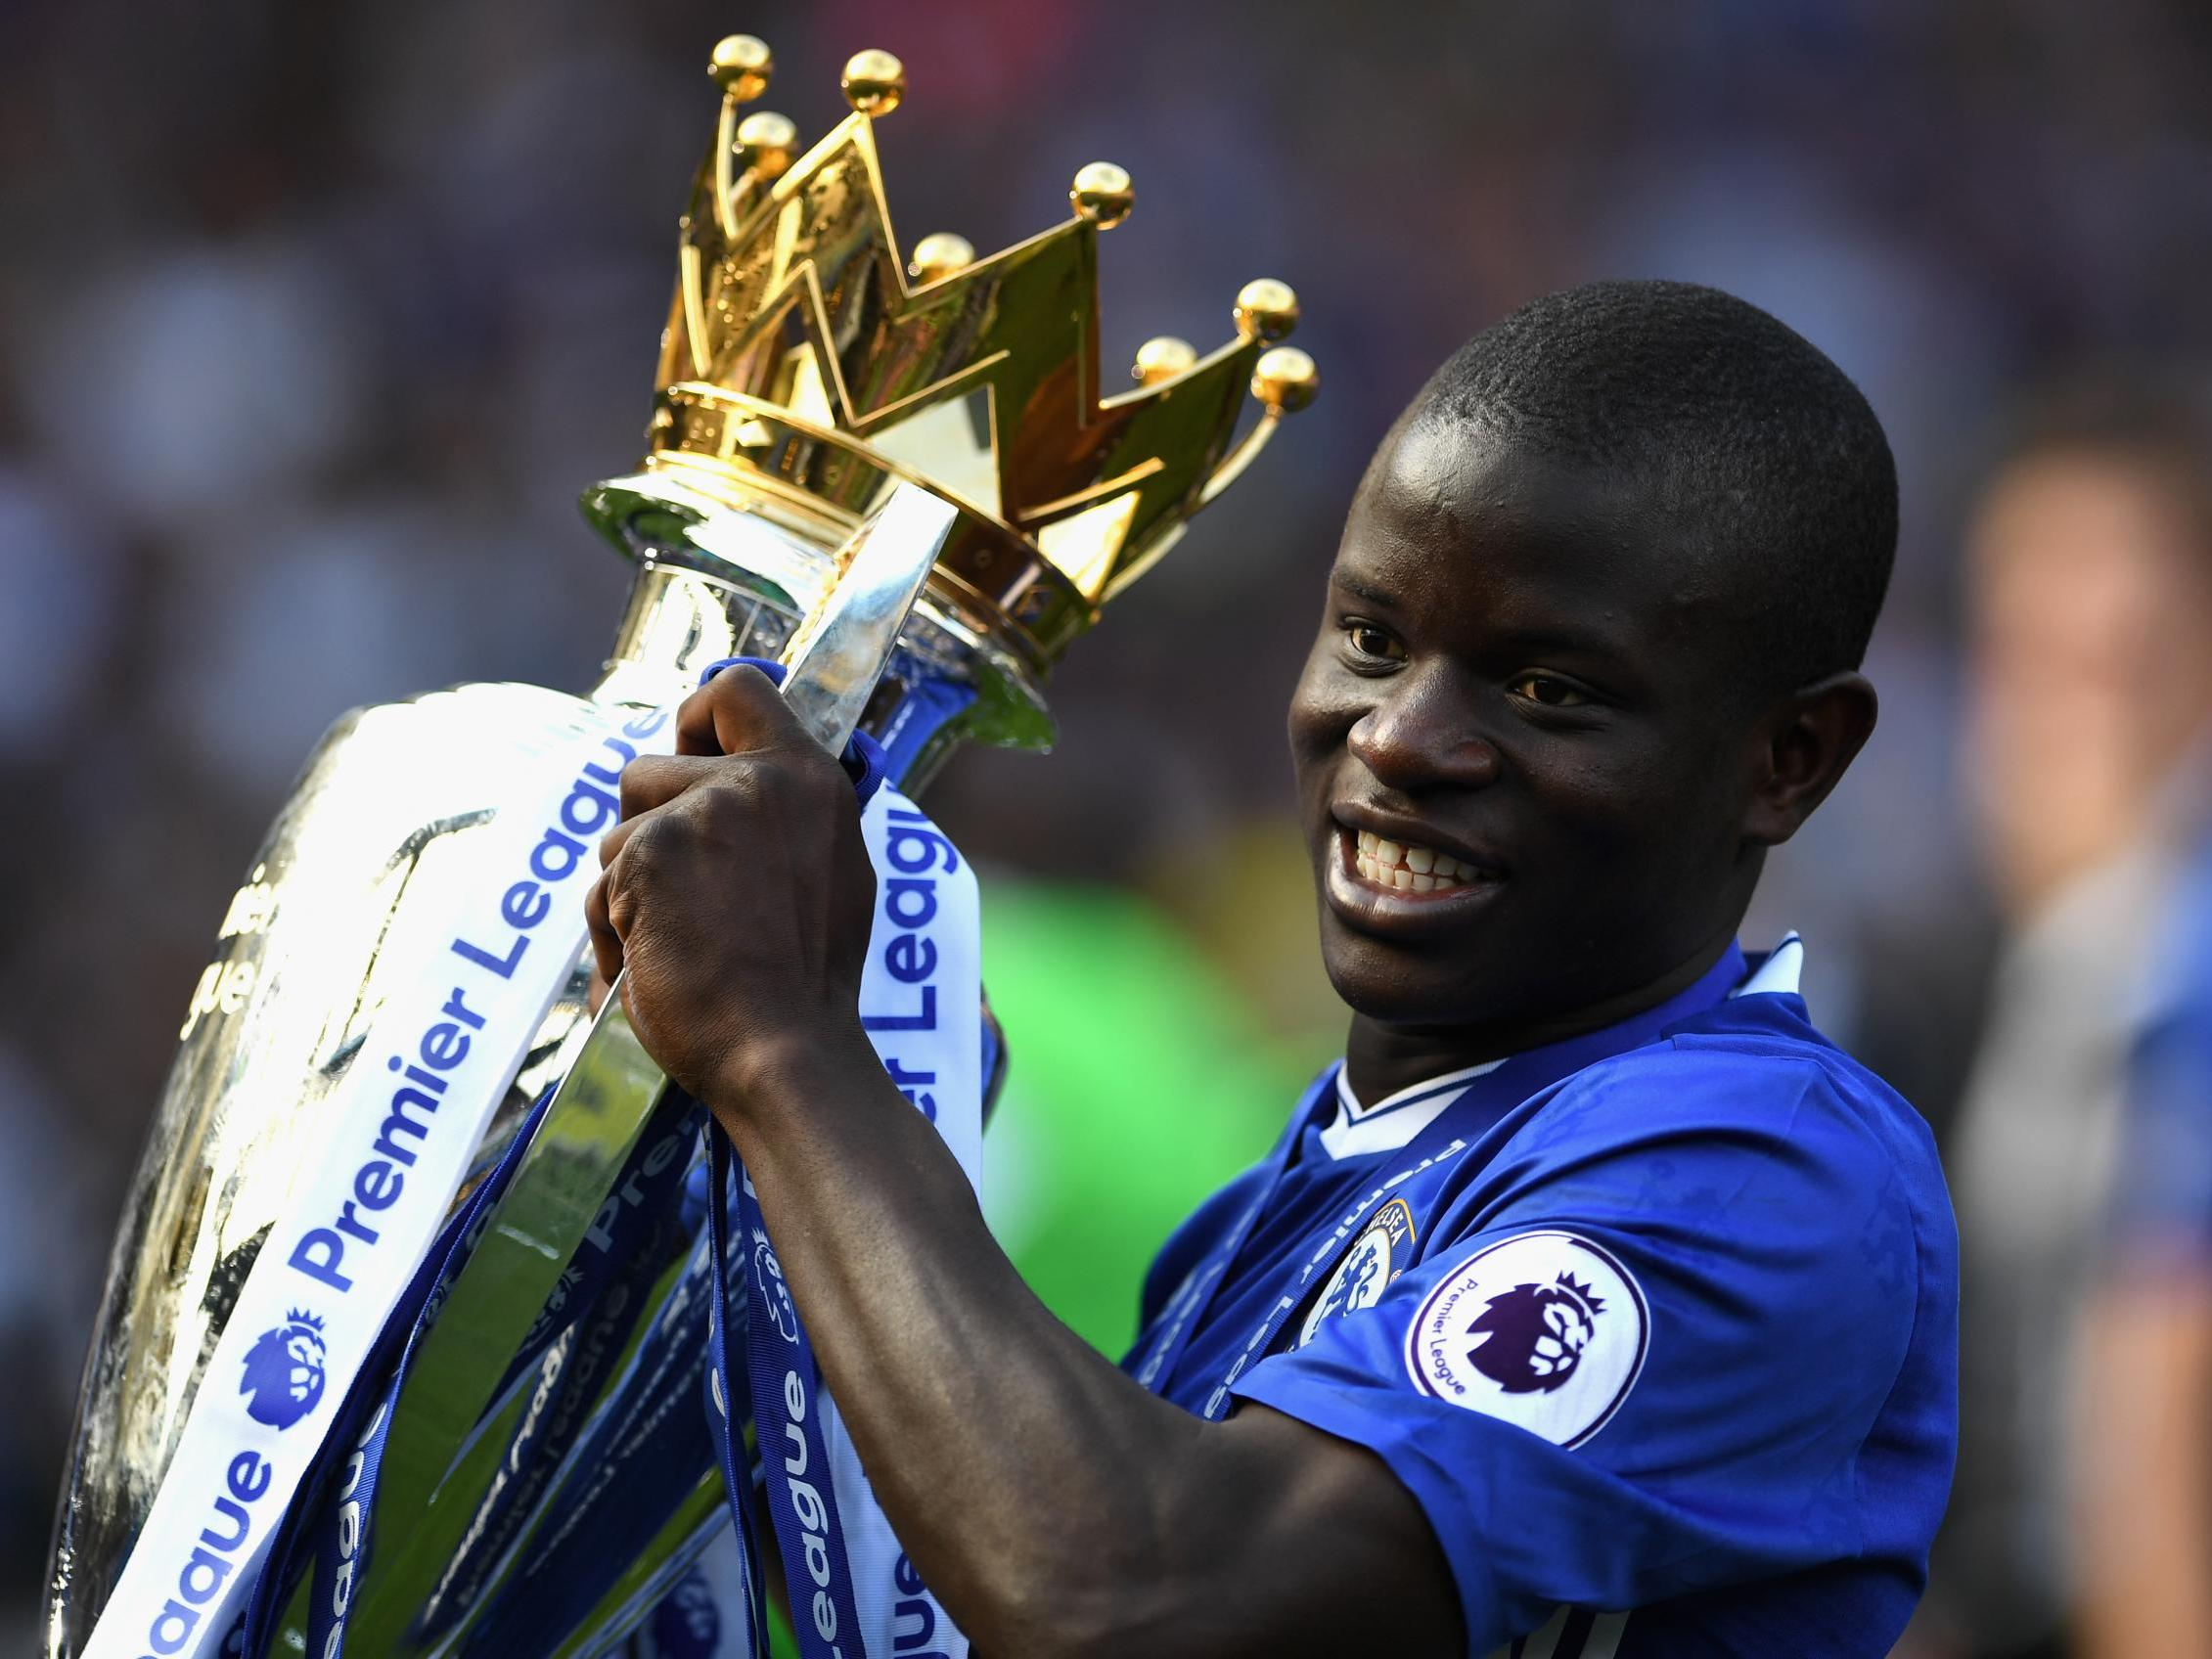 Chelsea transfer news: N'Golo Kante signs new five-year contract at Stamford Bridge